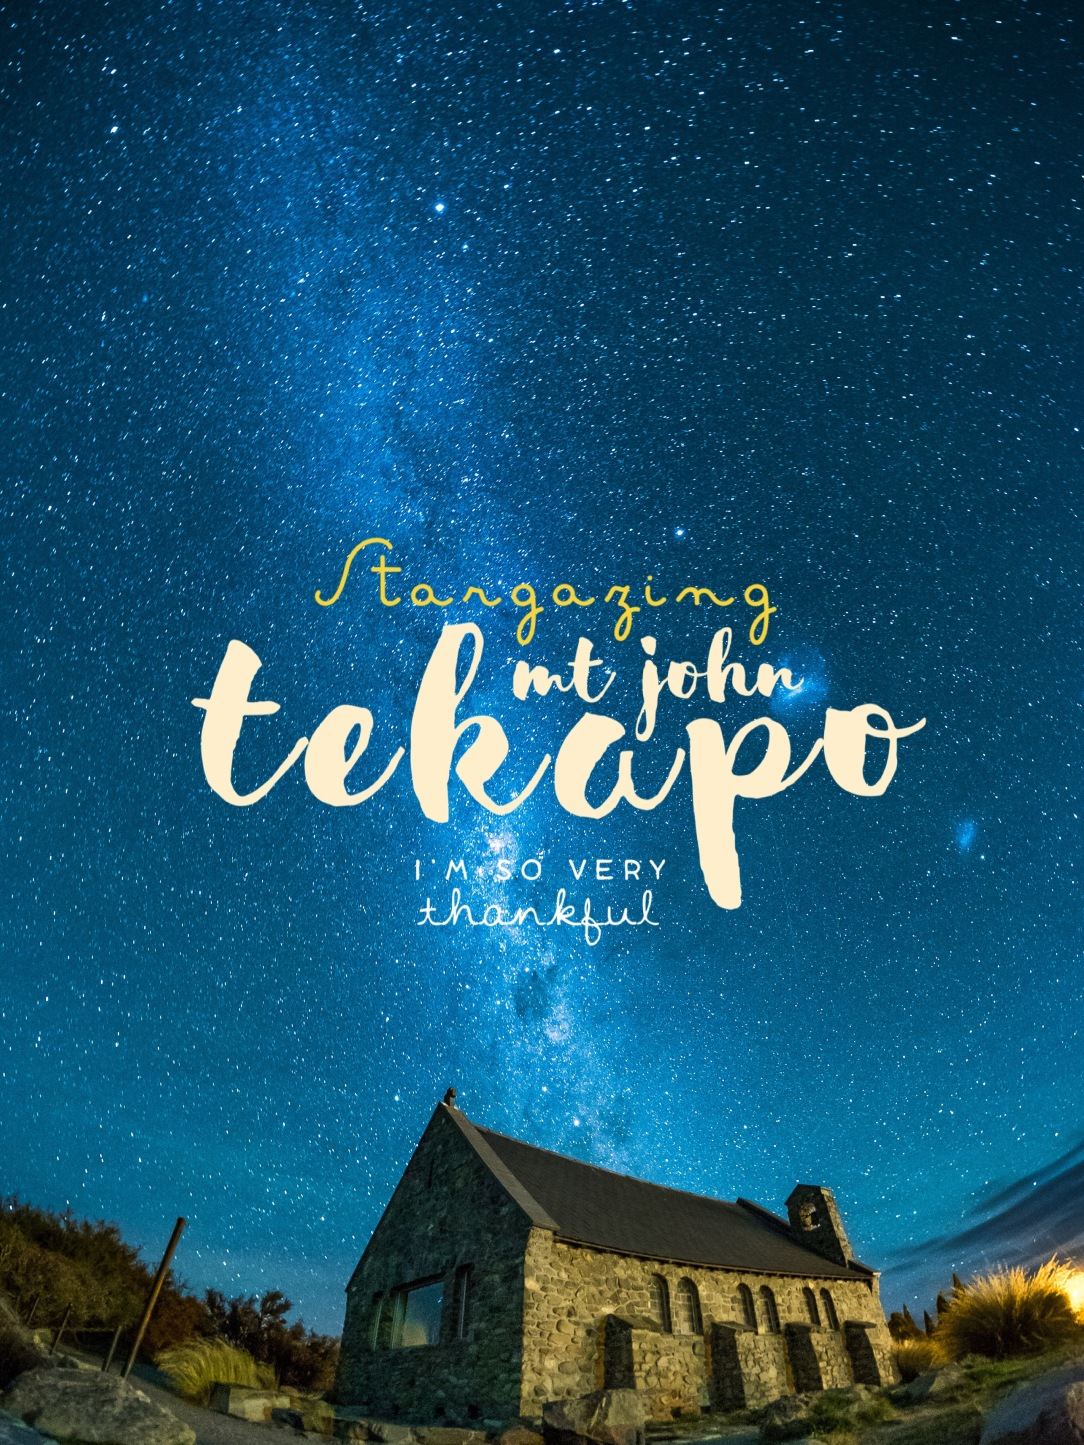 Lake Tekapo, Mount John, Stargazing, New Zealand